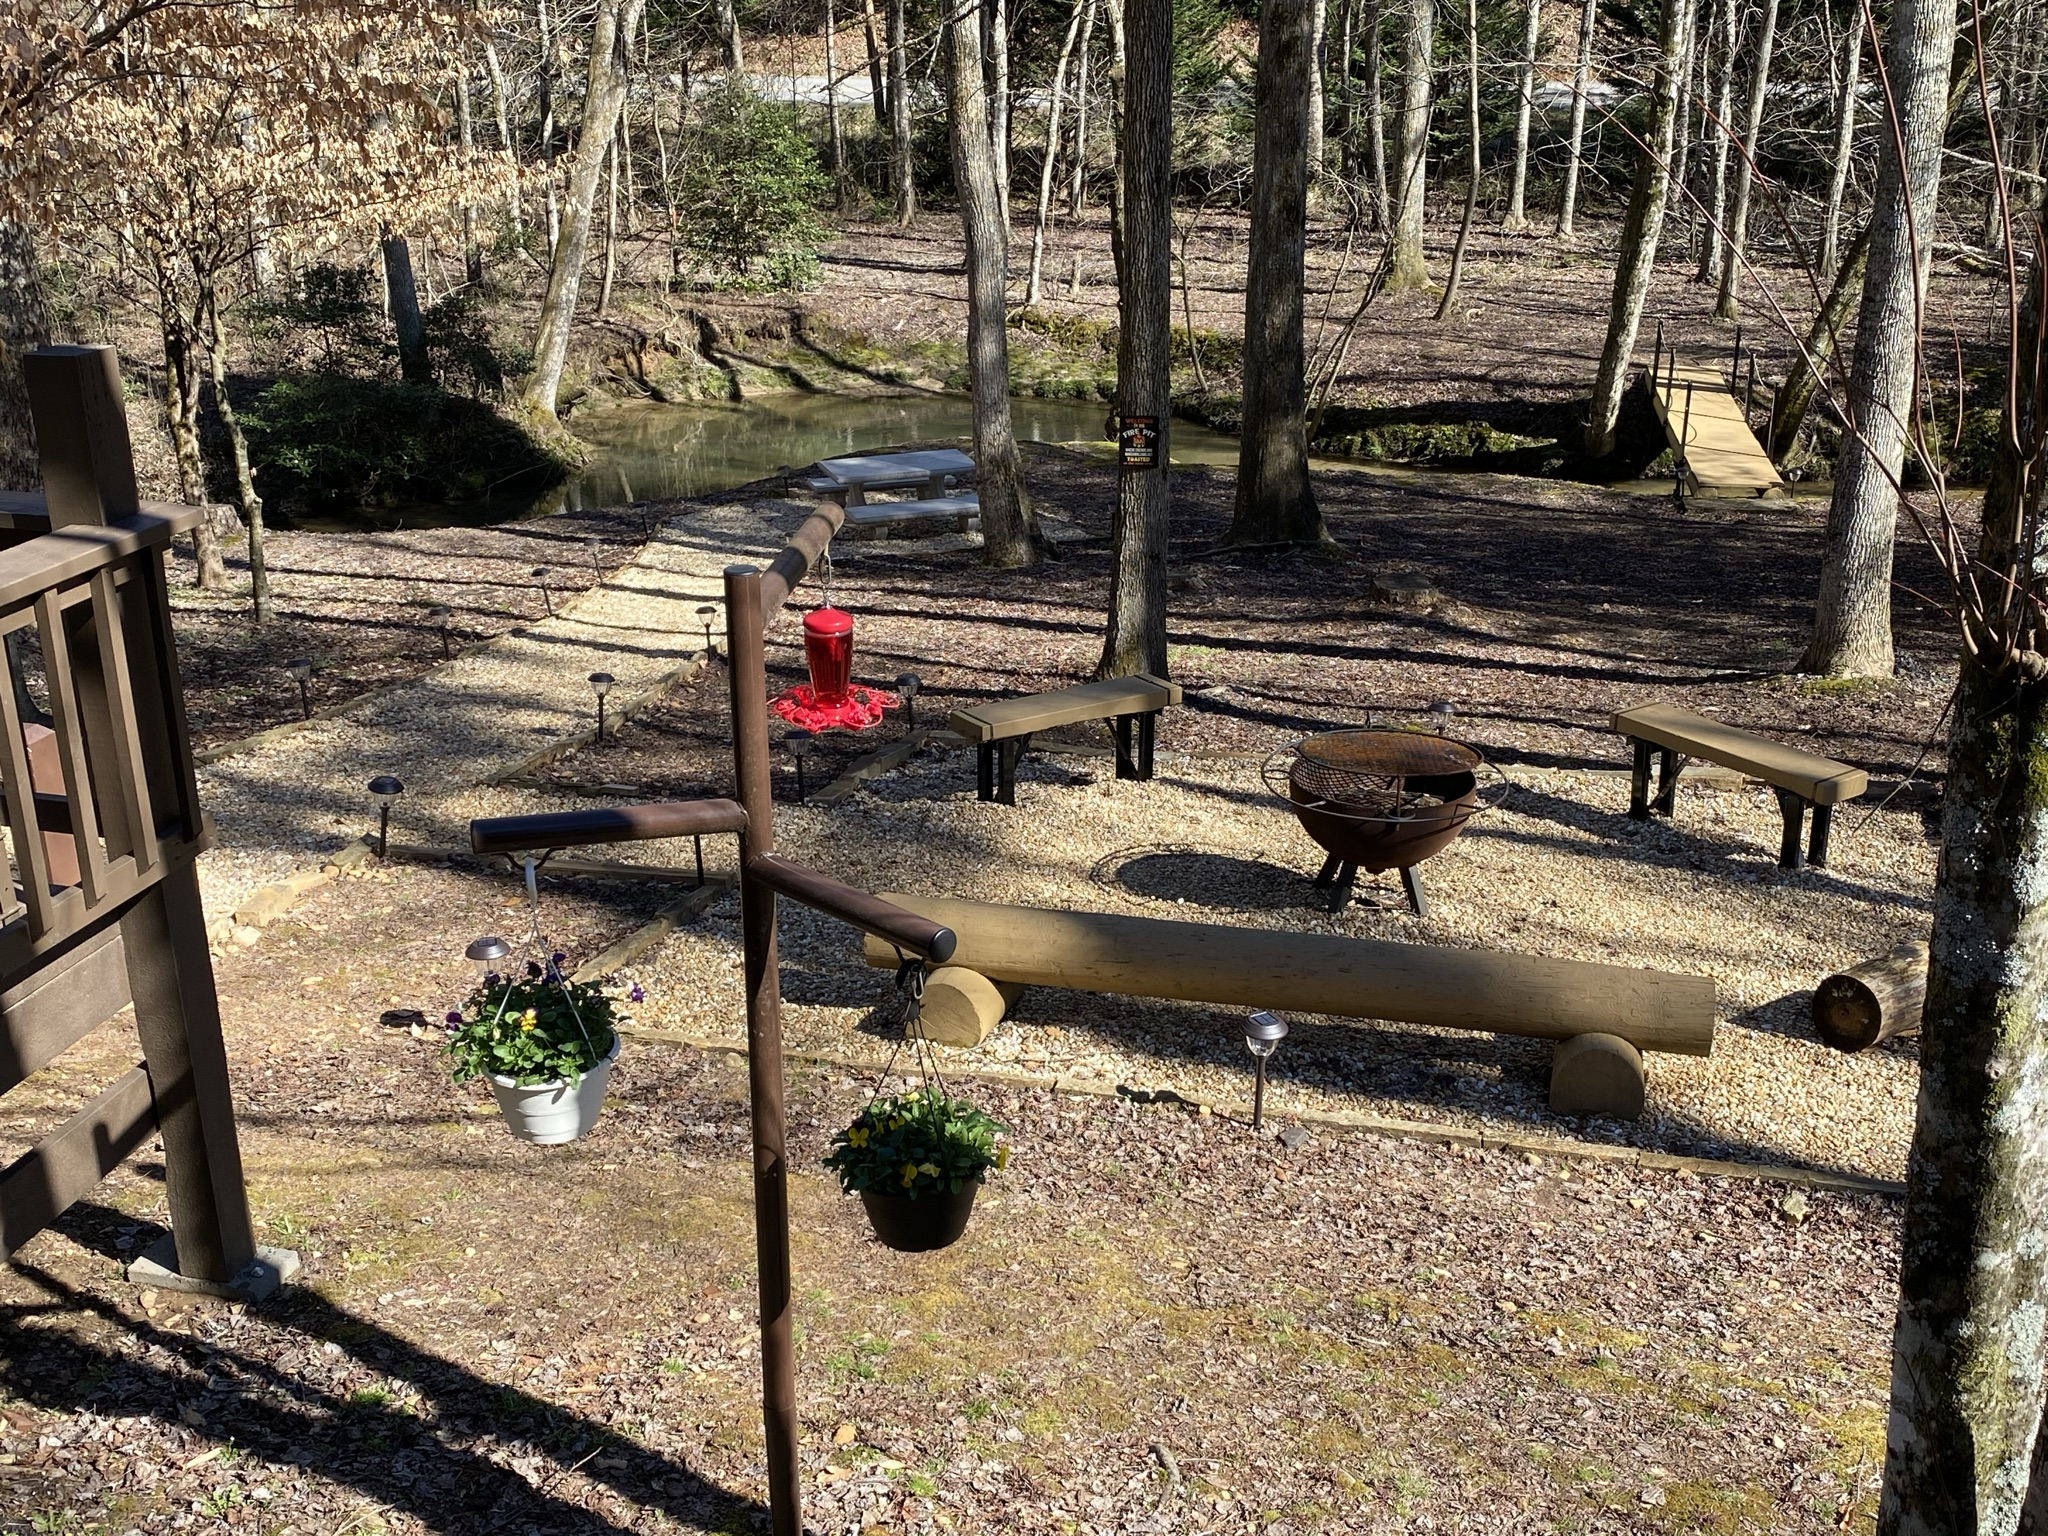 Large firepit area for enjoying the cool nights roasting marshmallows and making s'mores